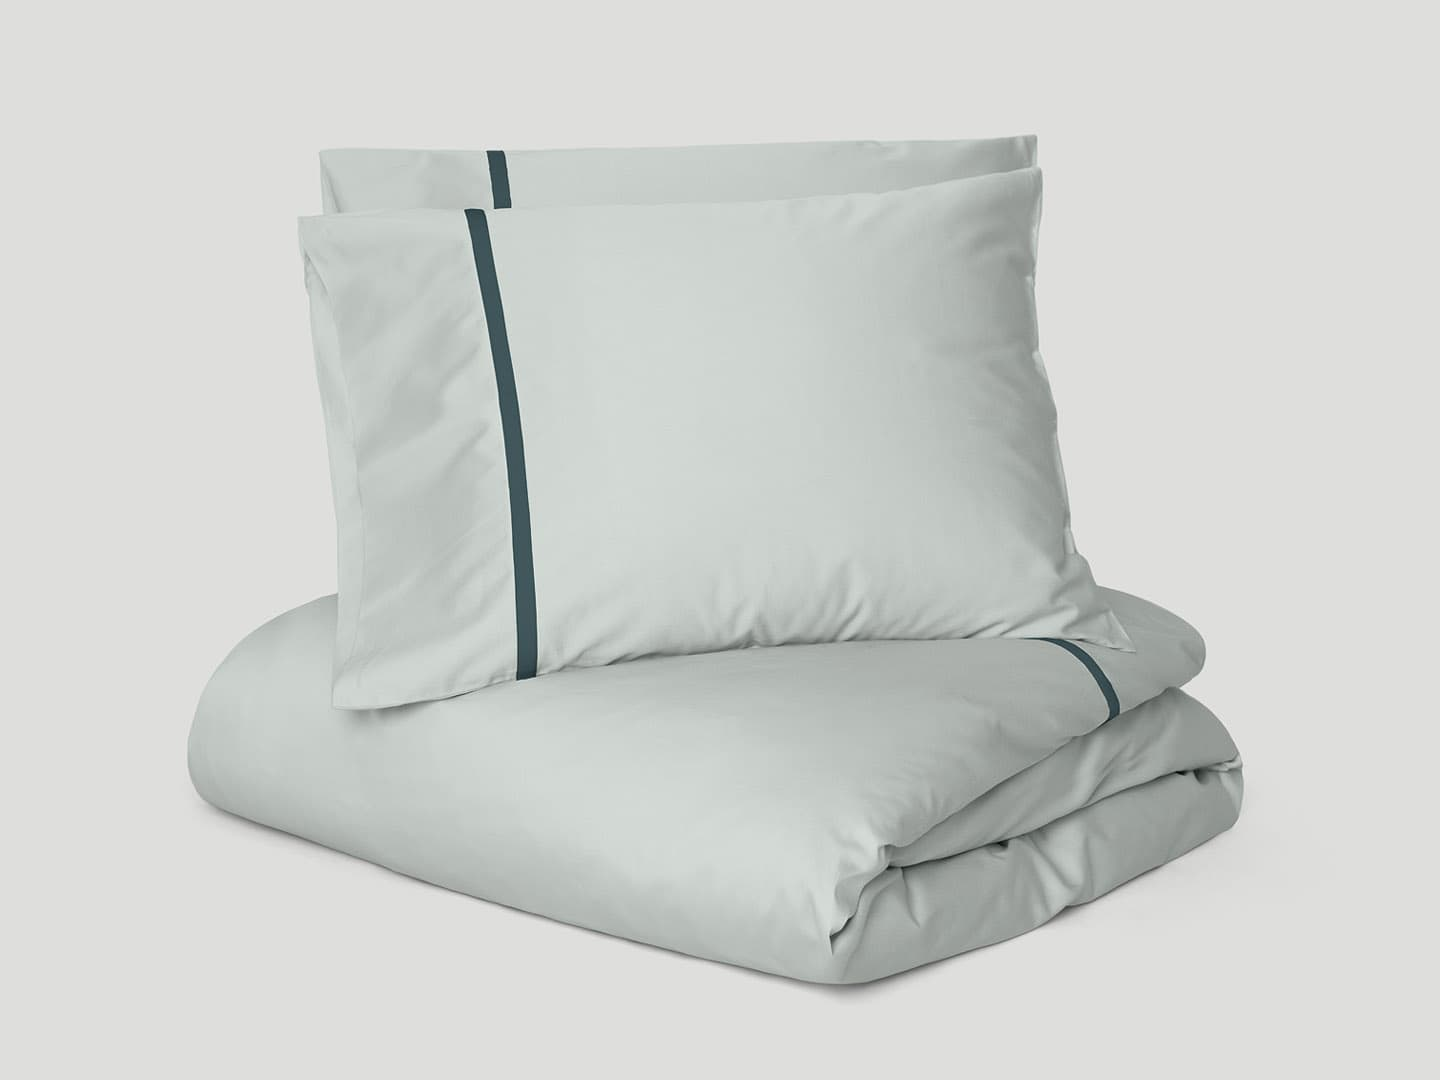 Duvet Cover Gatt - Misty Green